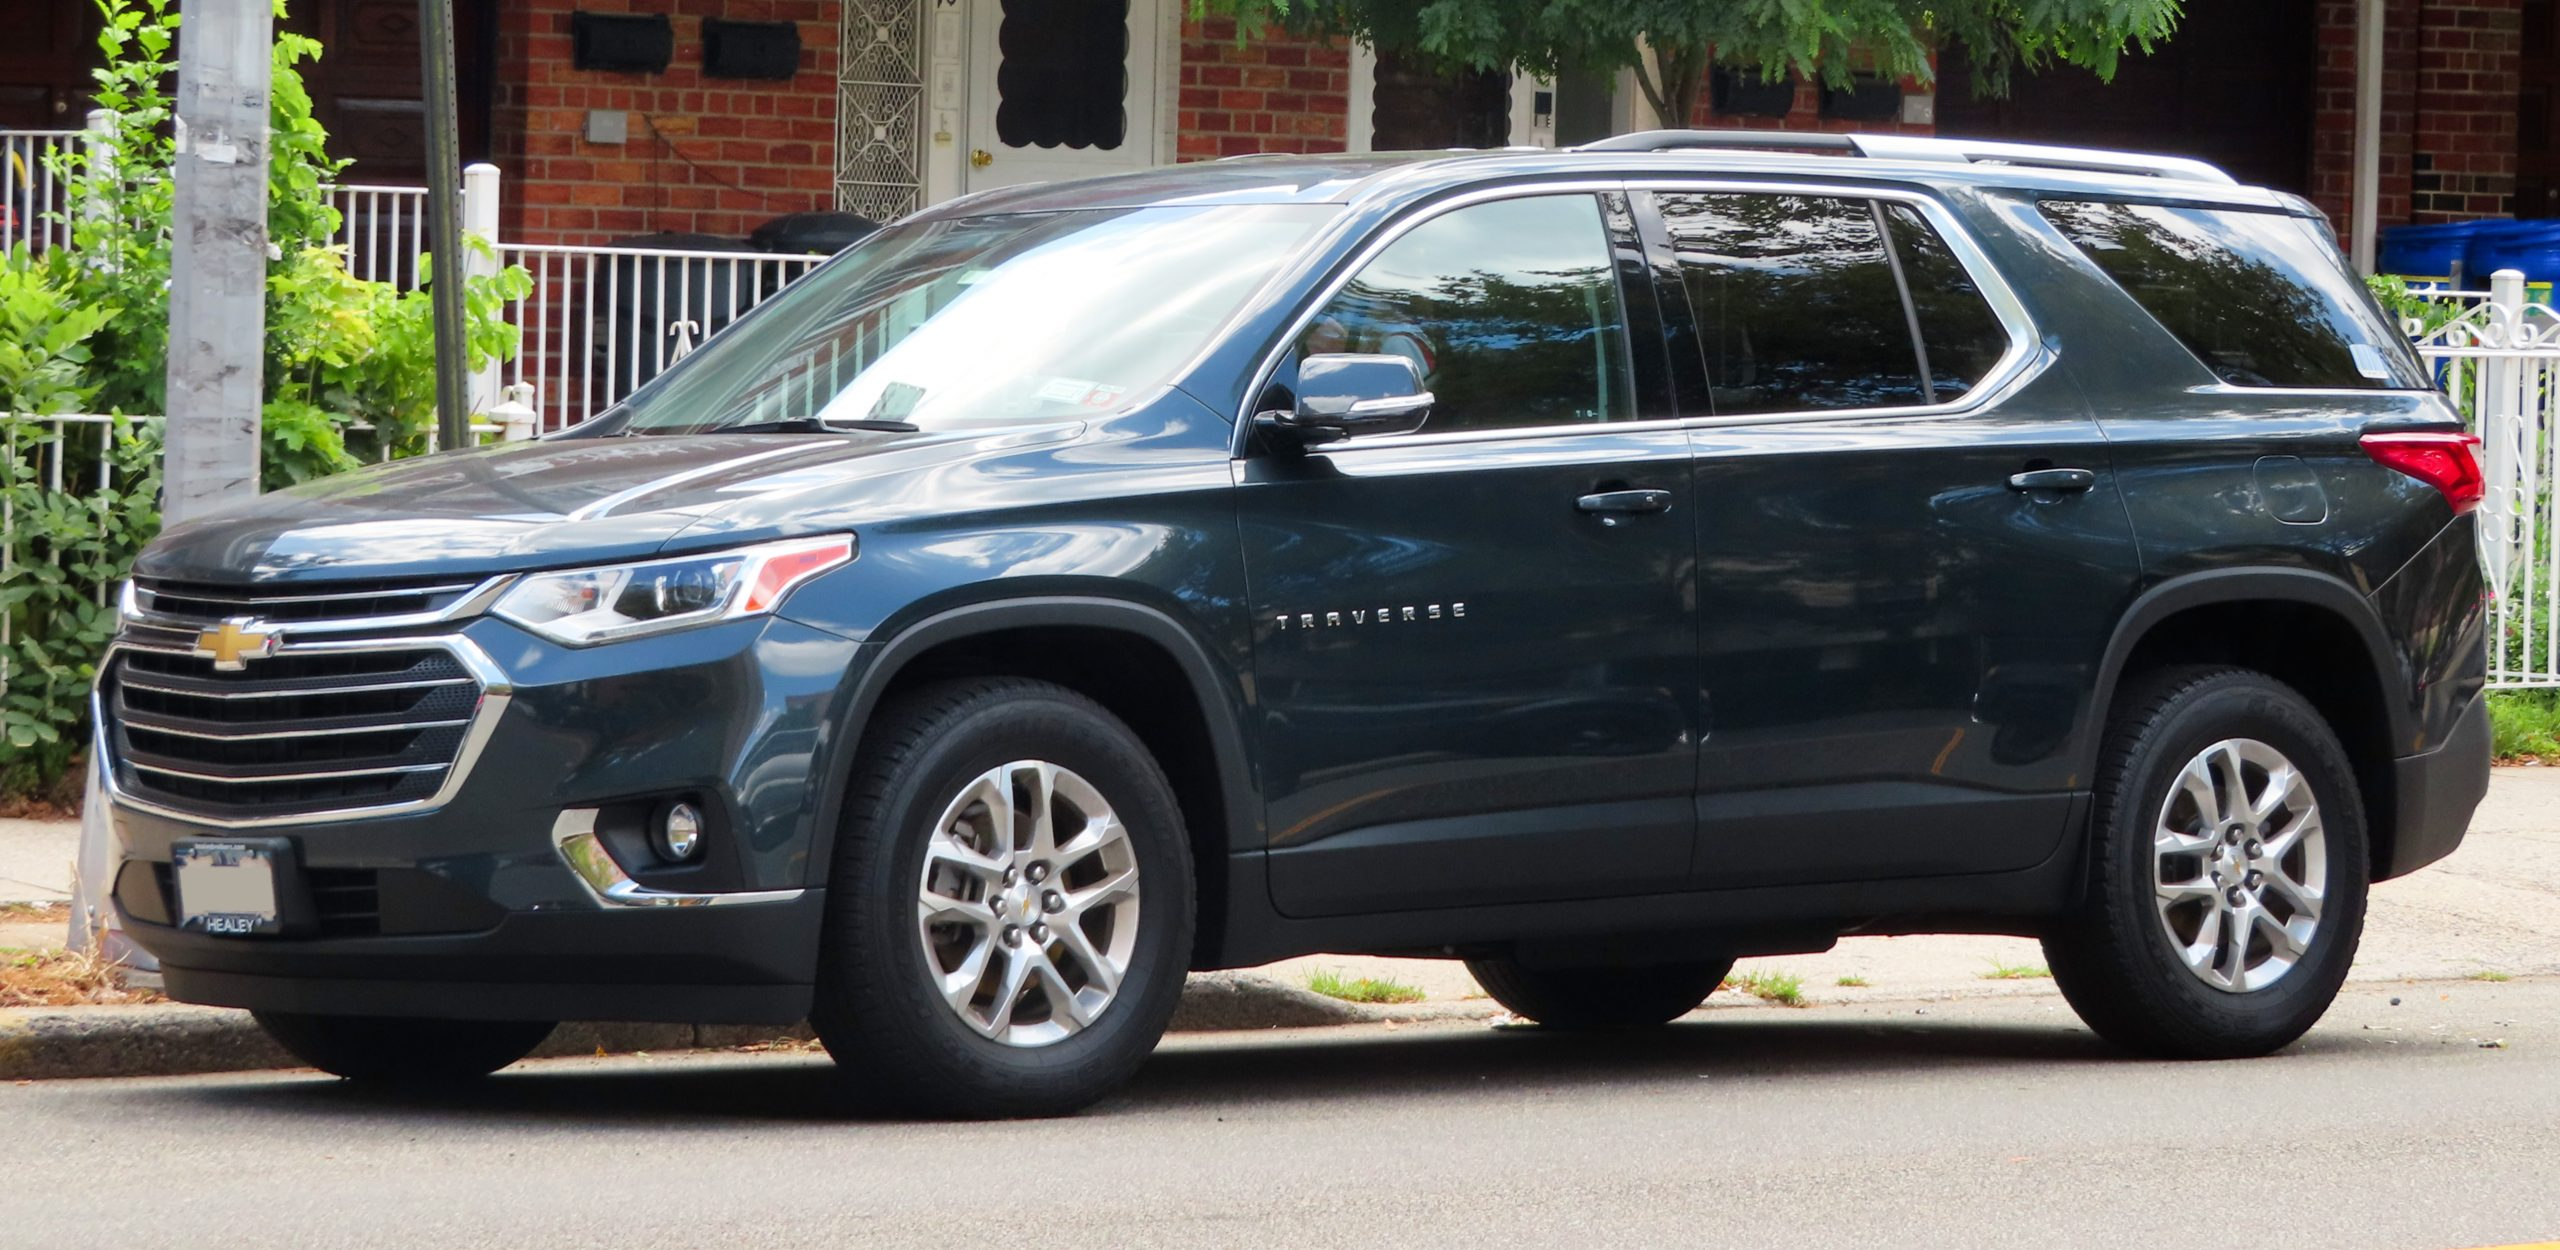 Chevrolet Traverse - Wikipedia 2022 Chevy Traverse Oil, Owners Manual, Problems